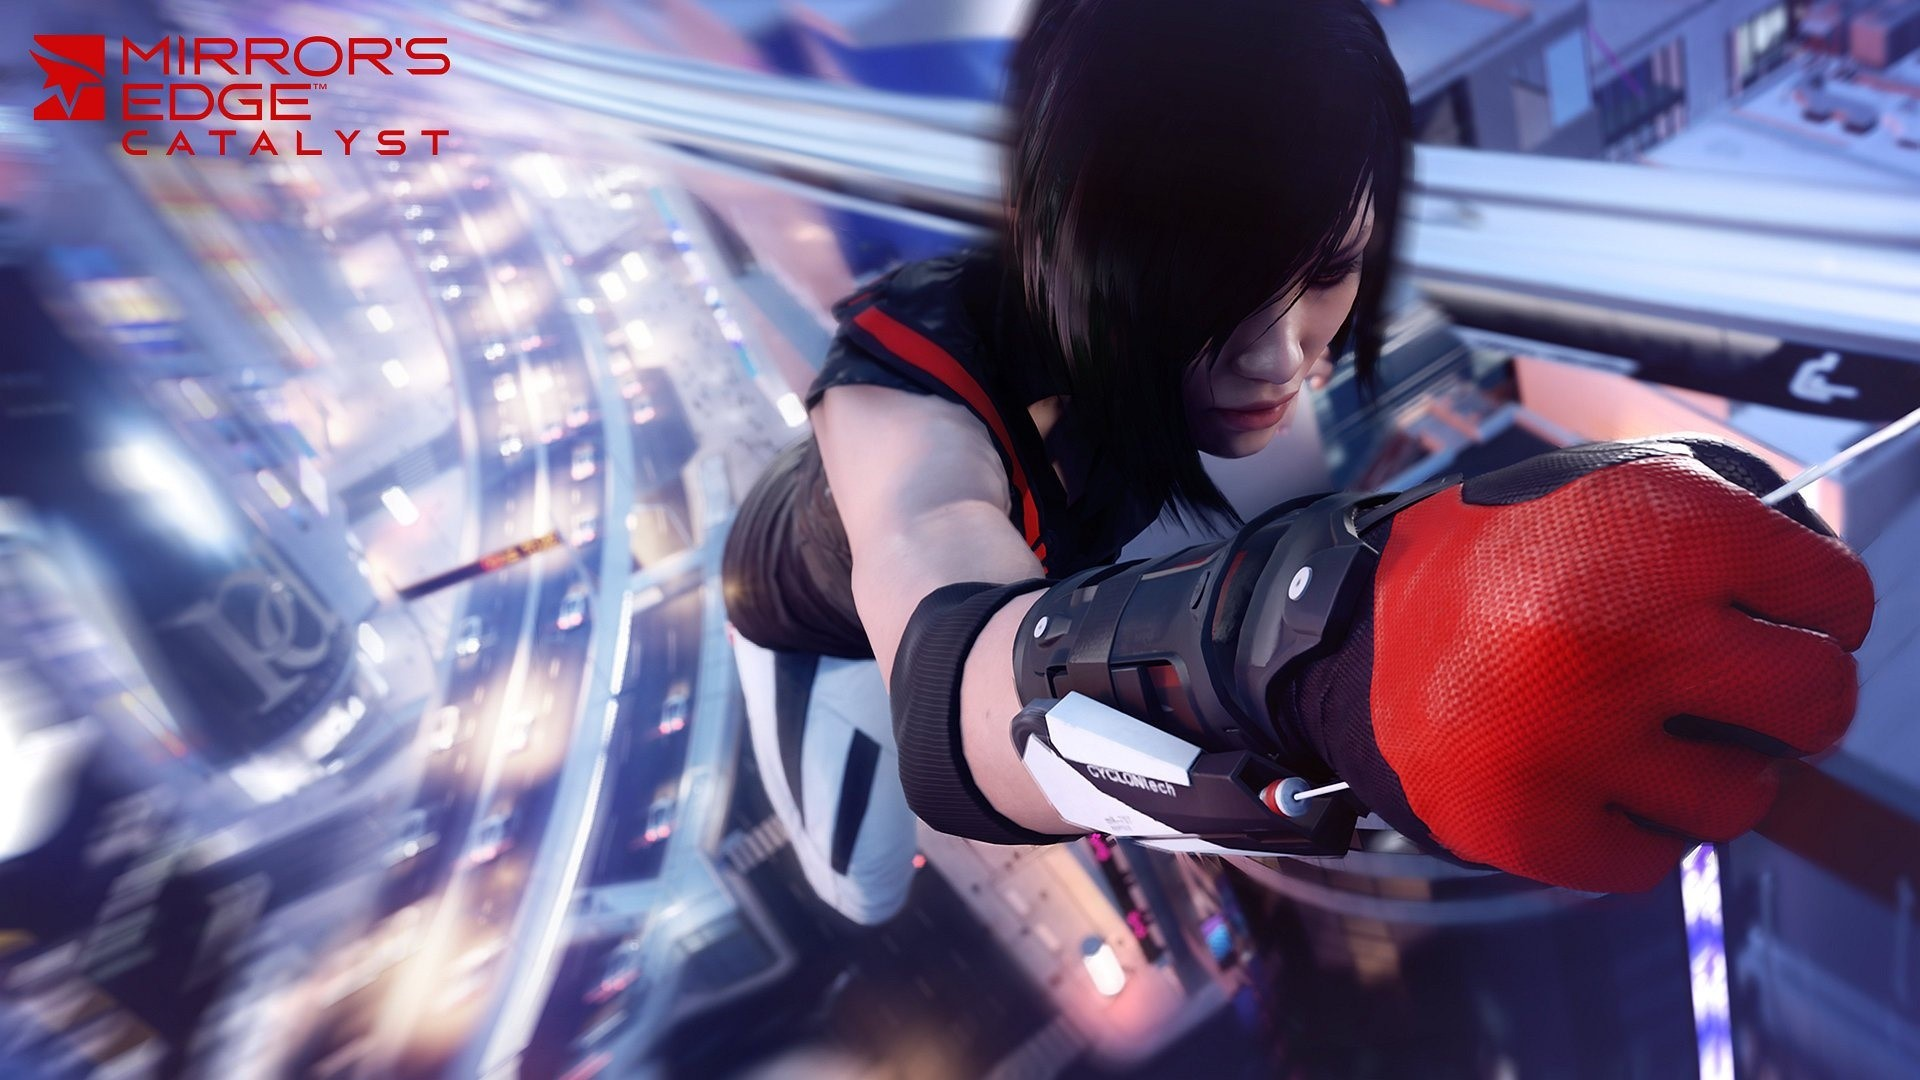 Fondo de pantalla de Faith Connors en Mirrors Edge Catalyst Imágenes